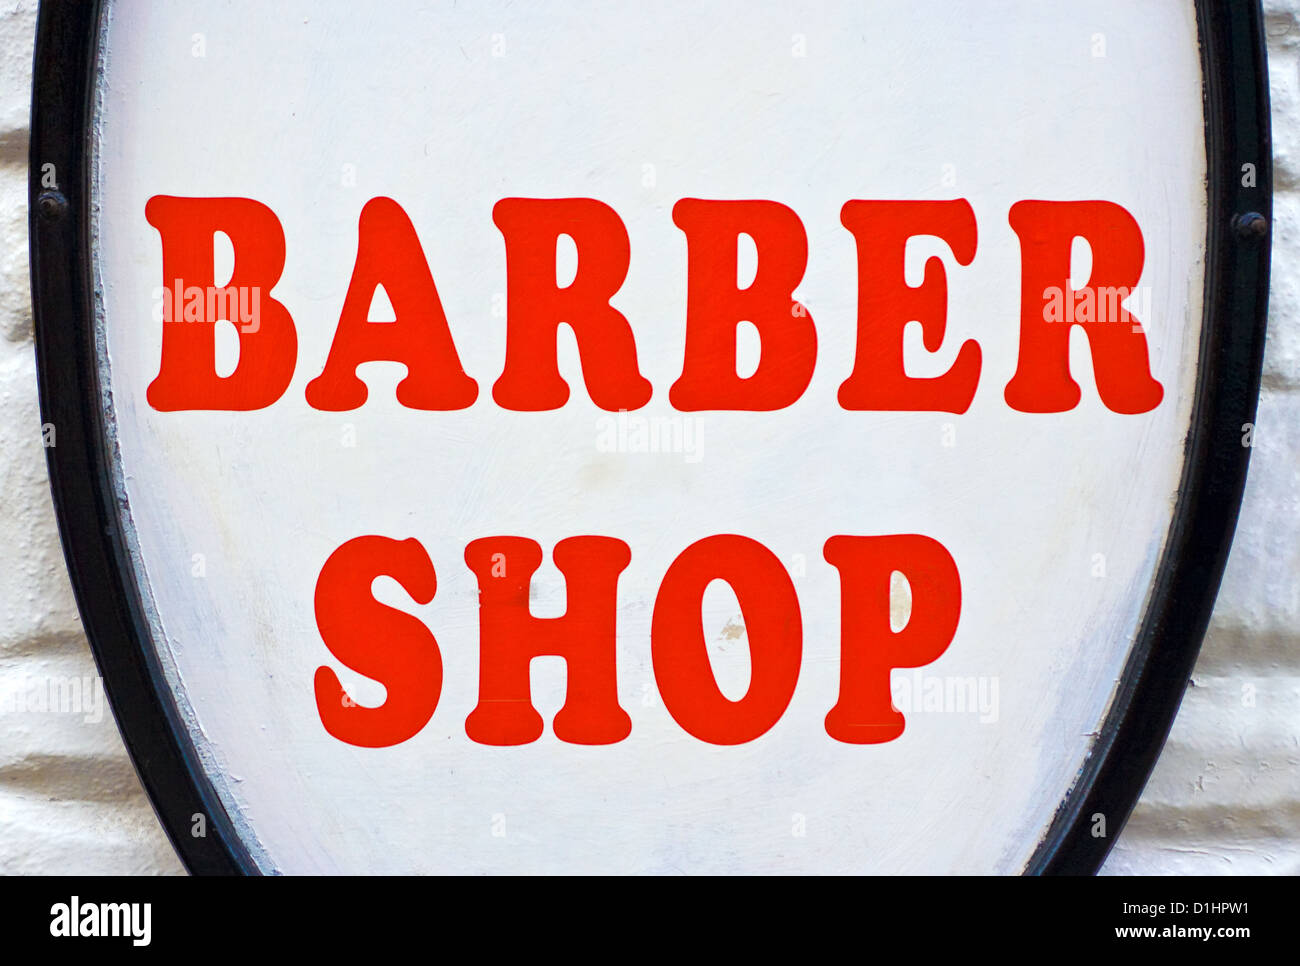 A Barber Shop sign with red letters and a white background - Stock Image